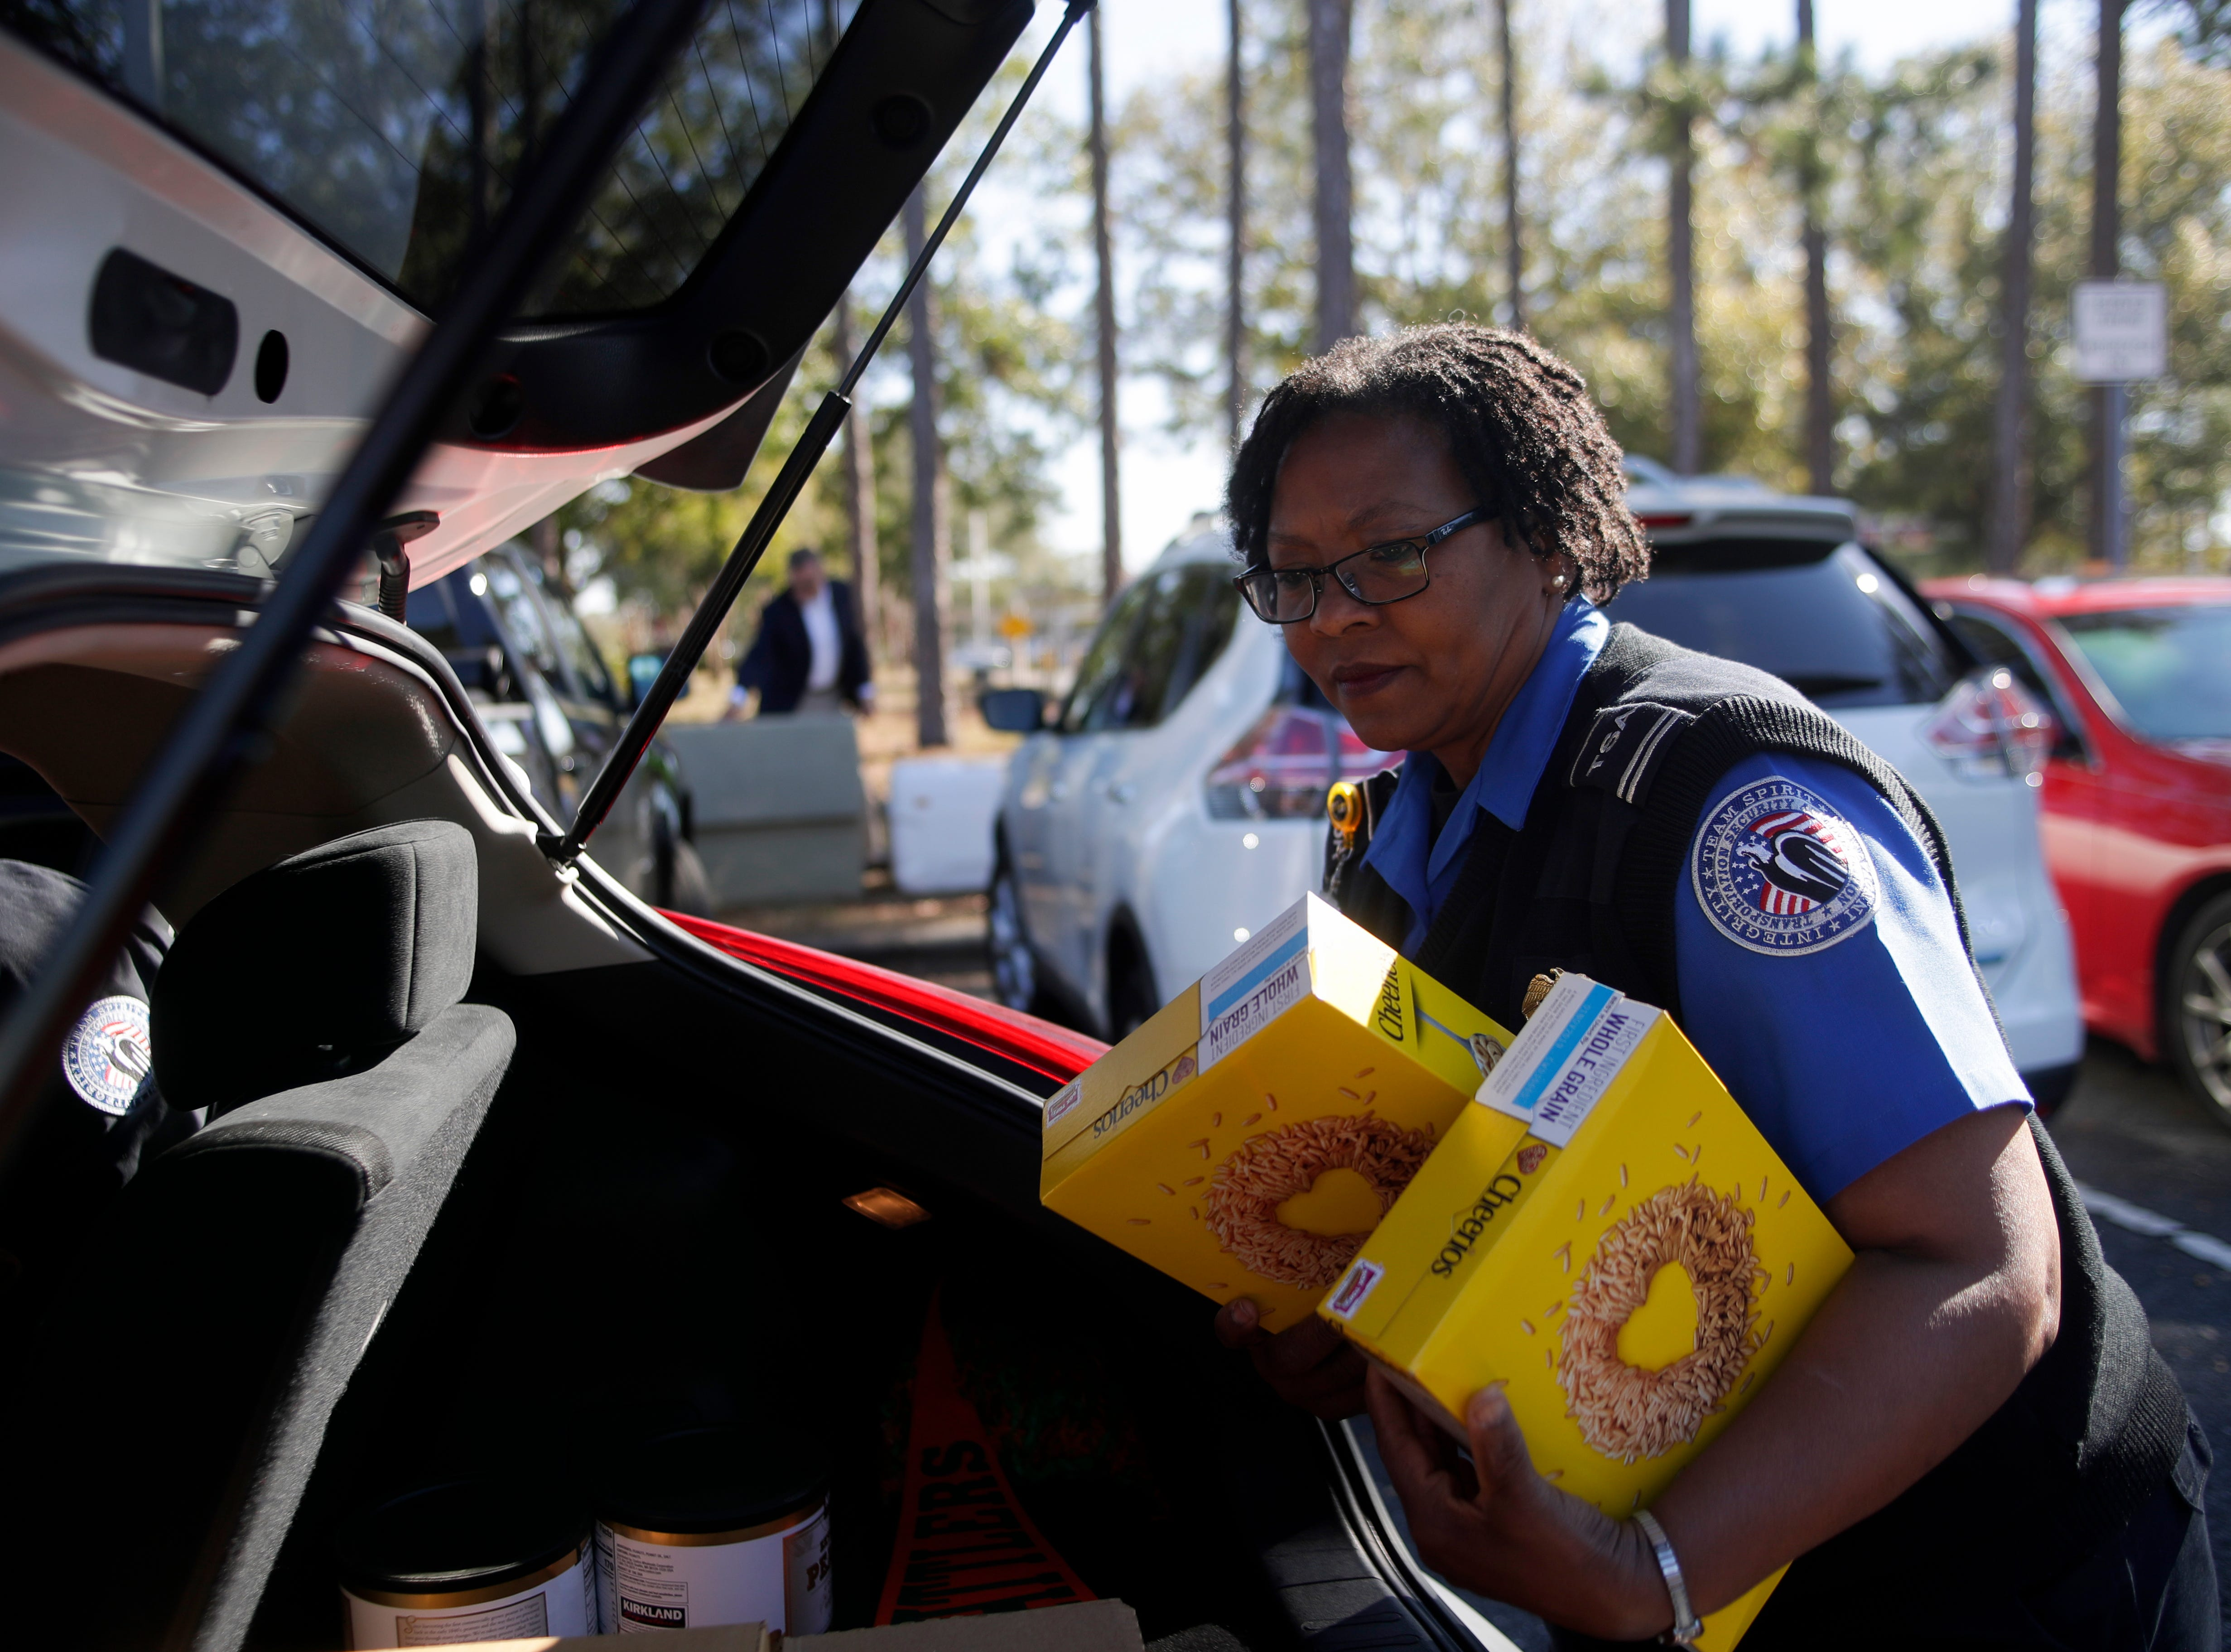 Transportation Security Administration employee Mae Speights loads Cheerios and other food donated to her by Second Harvest of the Big Bend at the Tallahassee International Airport Thursday, Jan. 17, 2019.